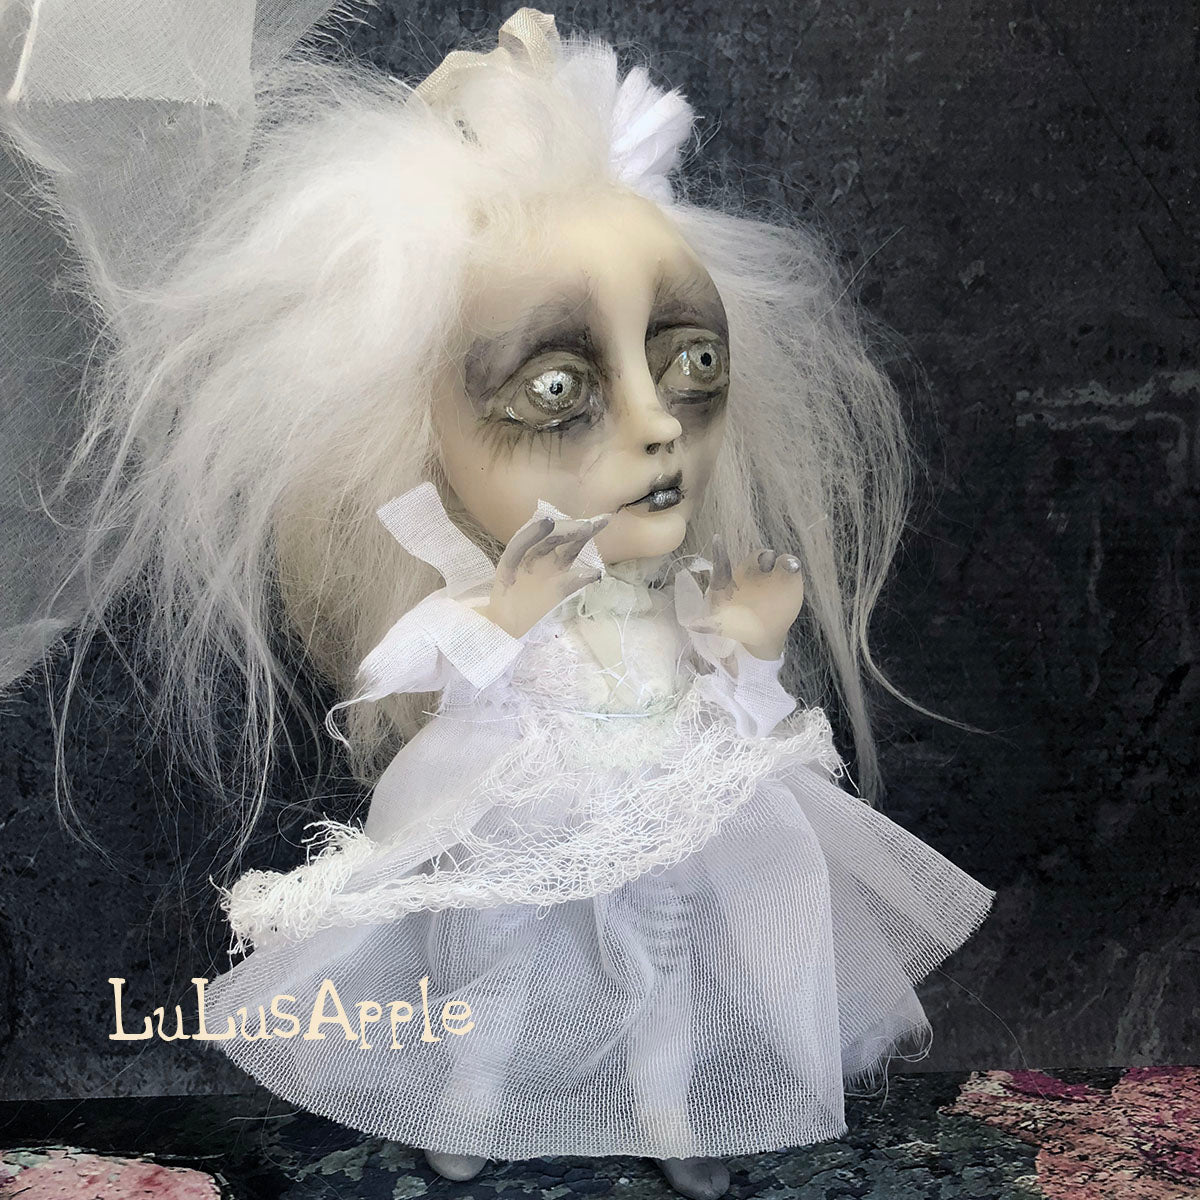 Lari Ghostly girl of Penchant Place  Mini OOAK LuLusApple Art Doll